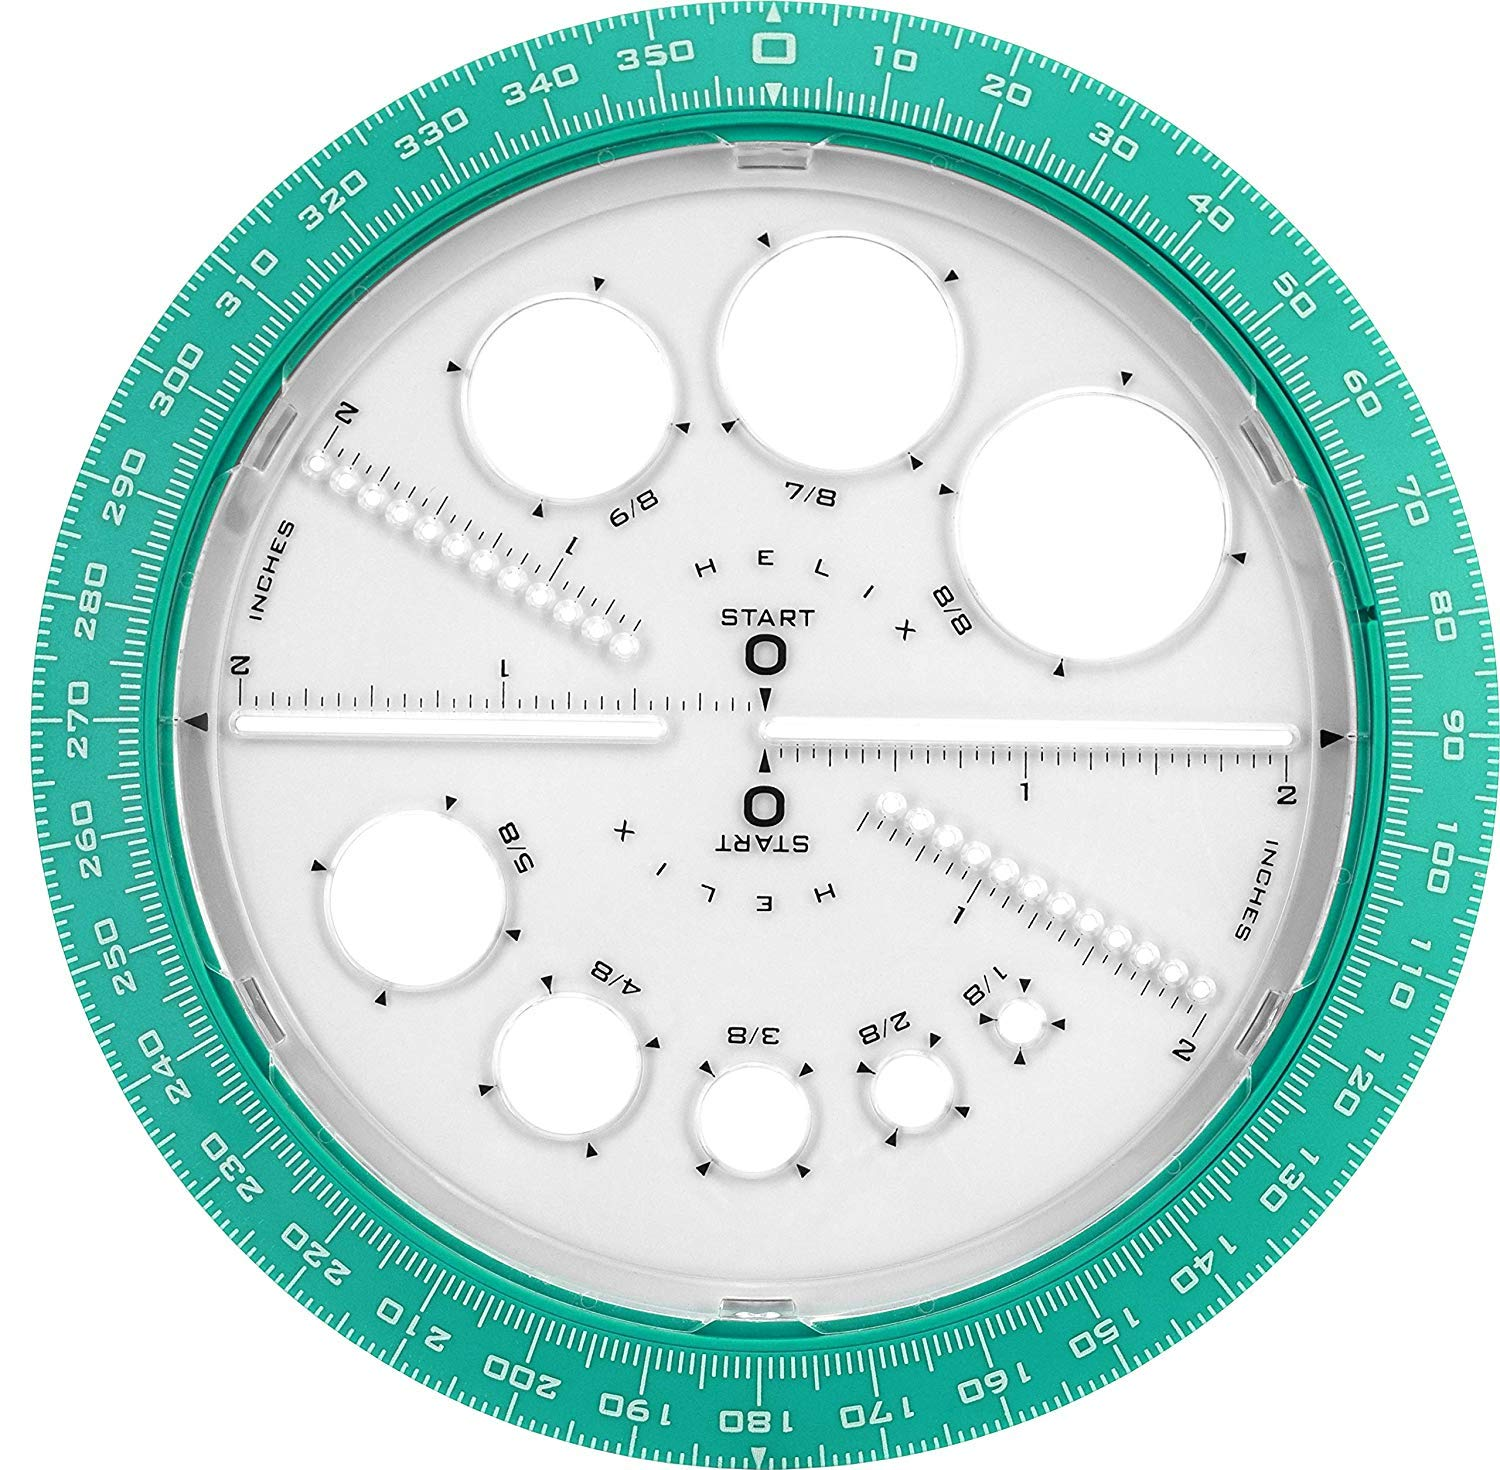 Helix 360° Angle and Circle Maker, Assorted Colors, 5 Pack by Maped Helix USA (Image #1)